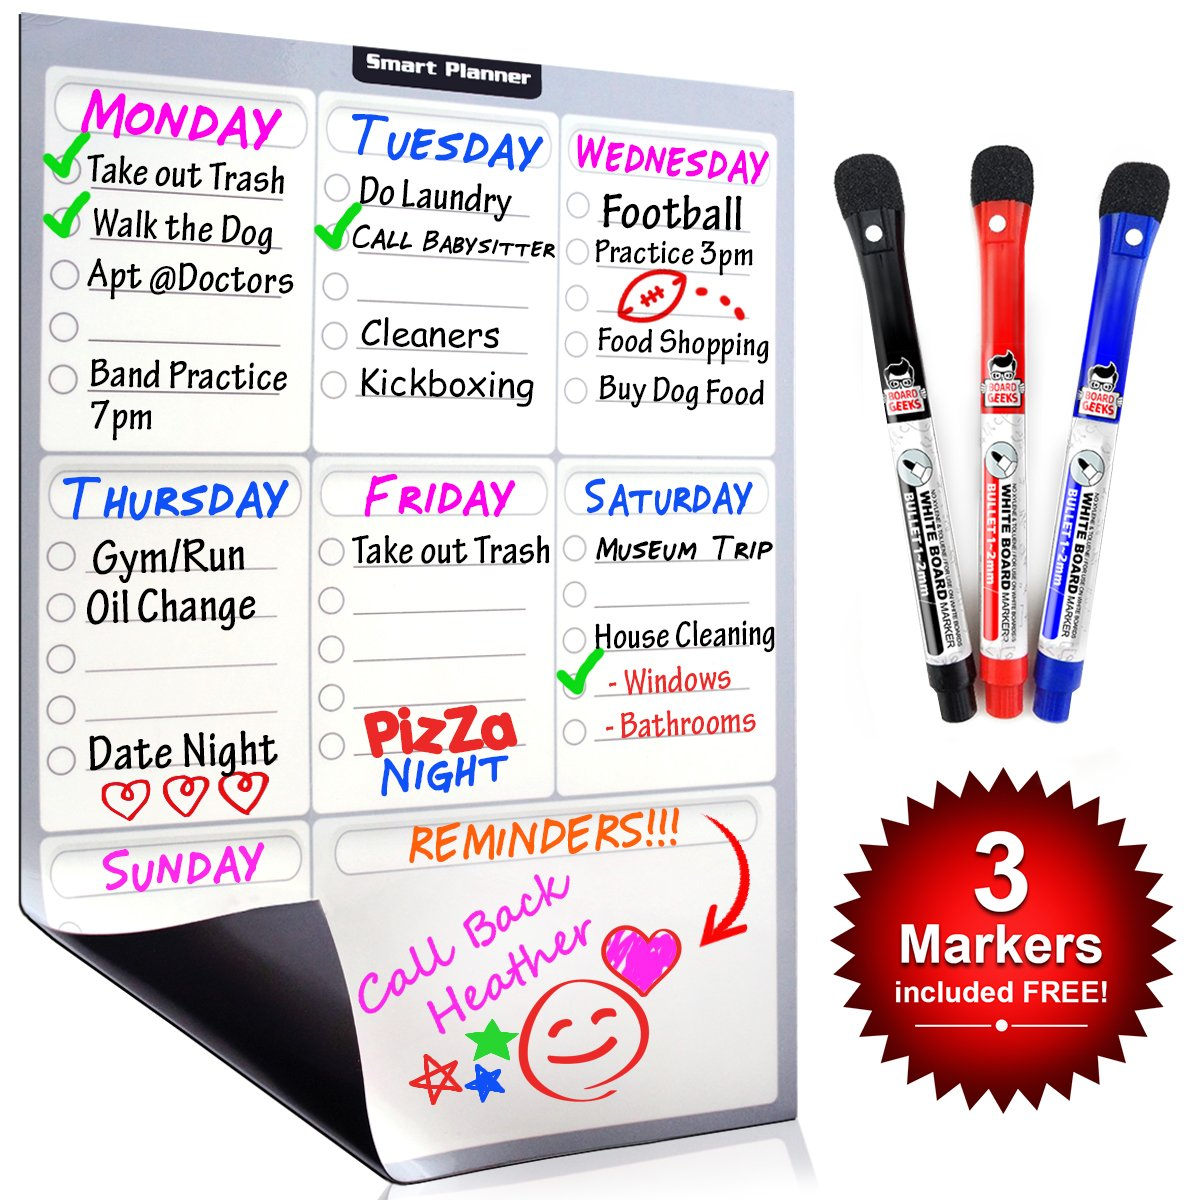 Smart Planner Weekly Multi-Purpose Magnetic Refrigerator Dry Erase Board with 3 Magnetic Dry Erase Markers